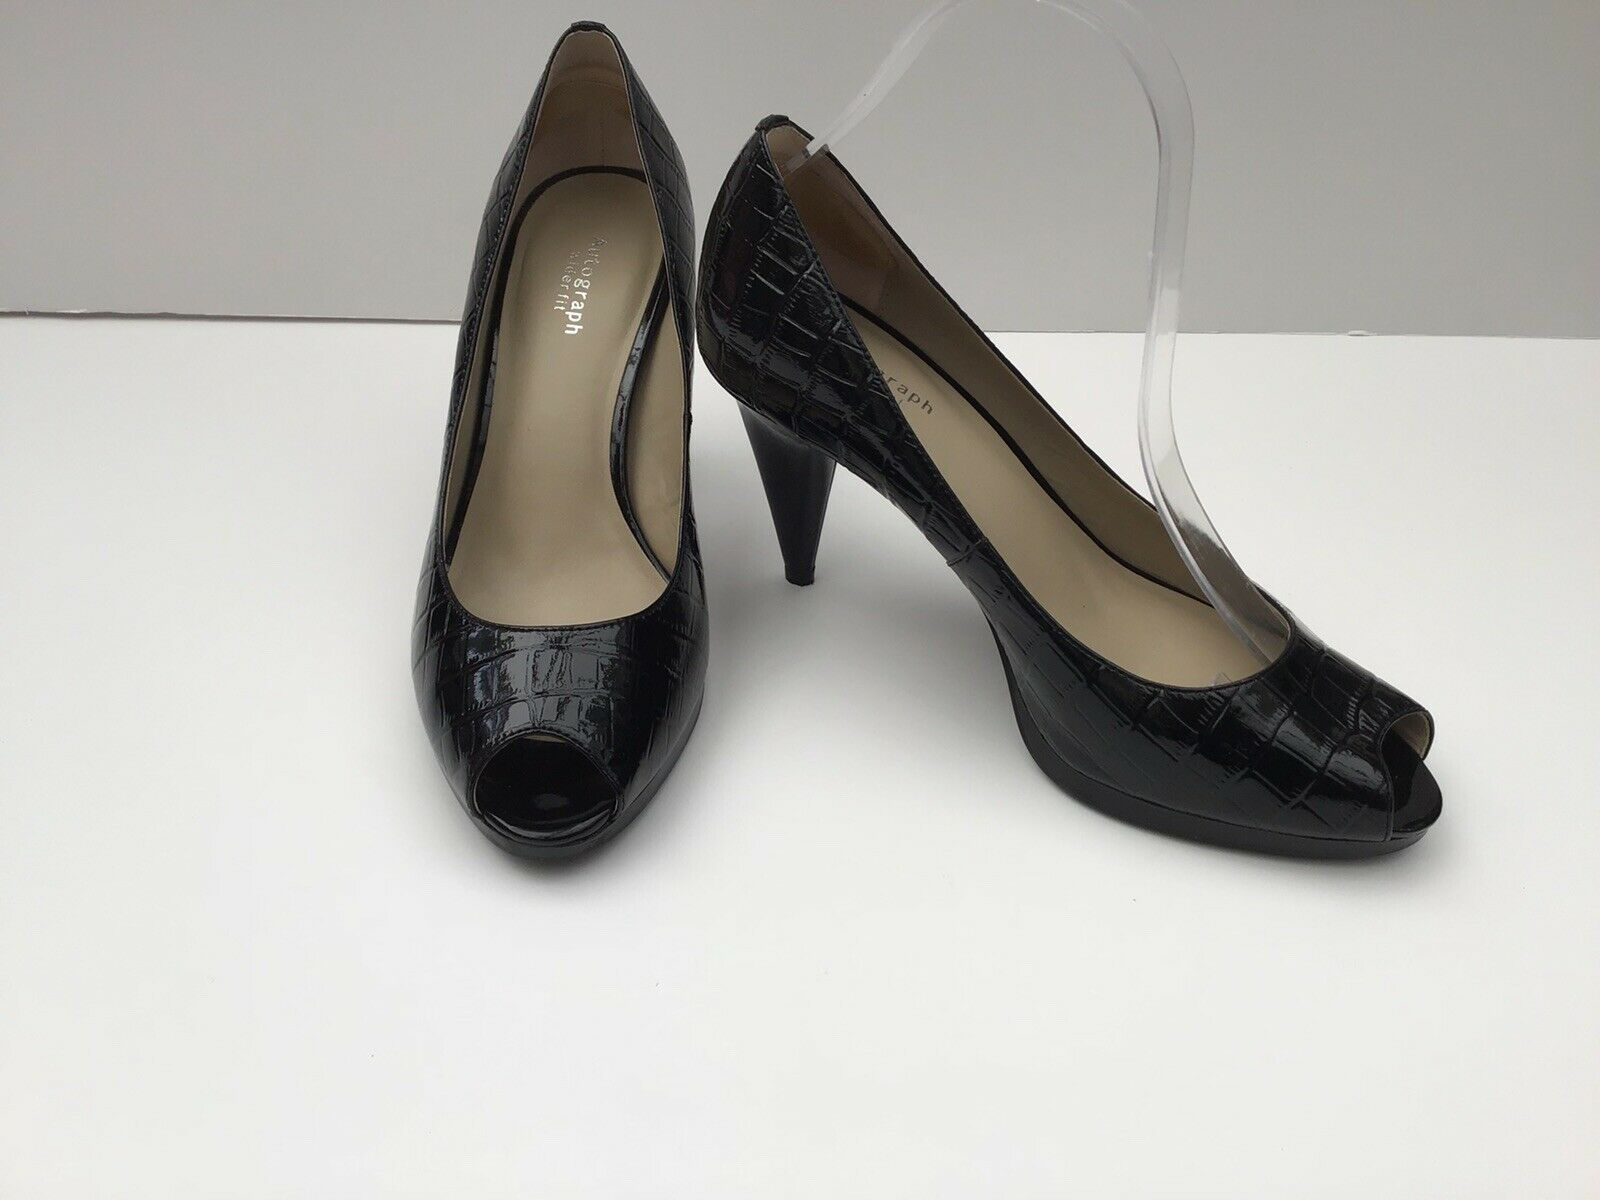 M&S Autograph Black Patent Peep Toe High Heeled Wide Fit shoes Size 6